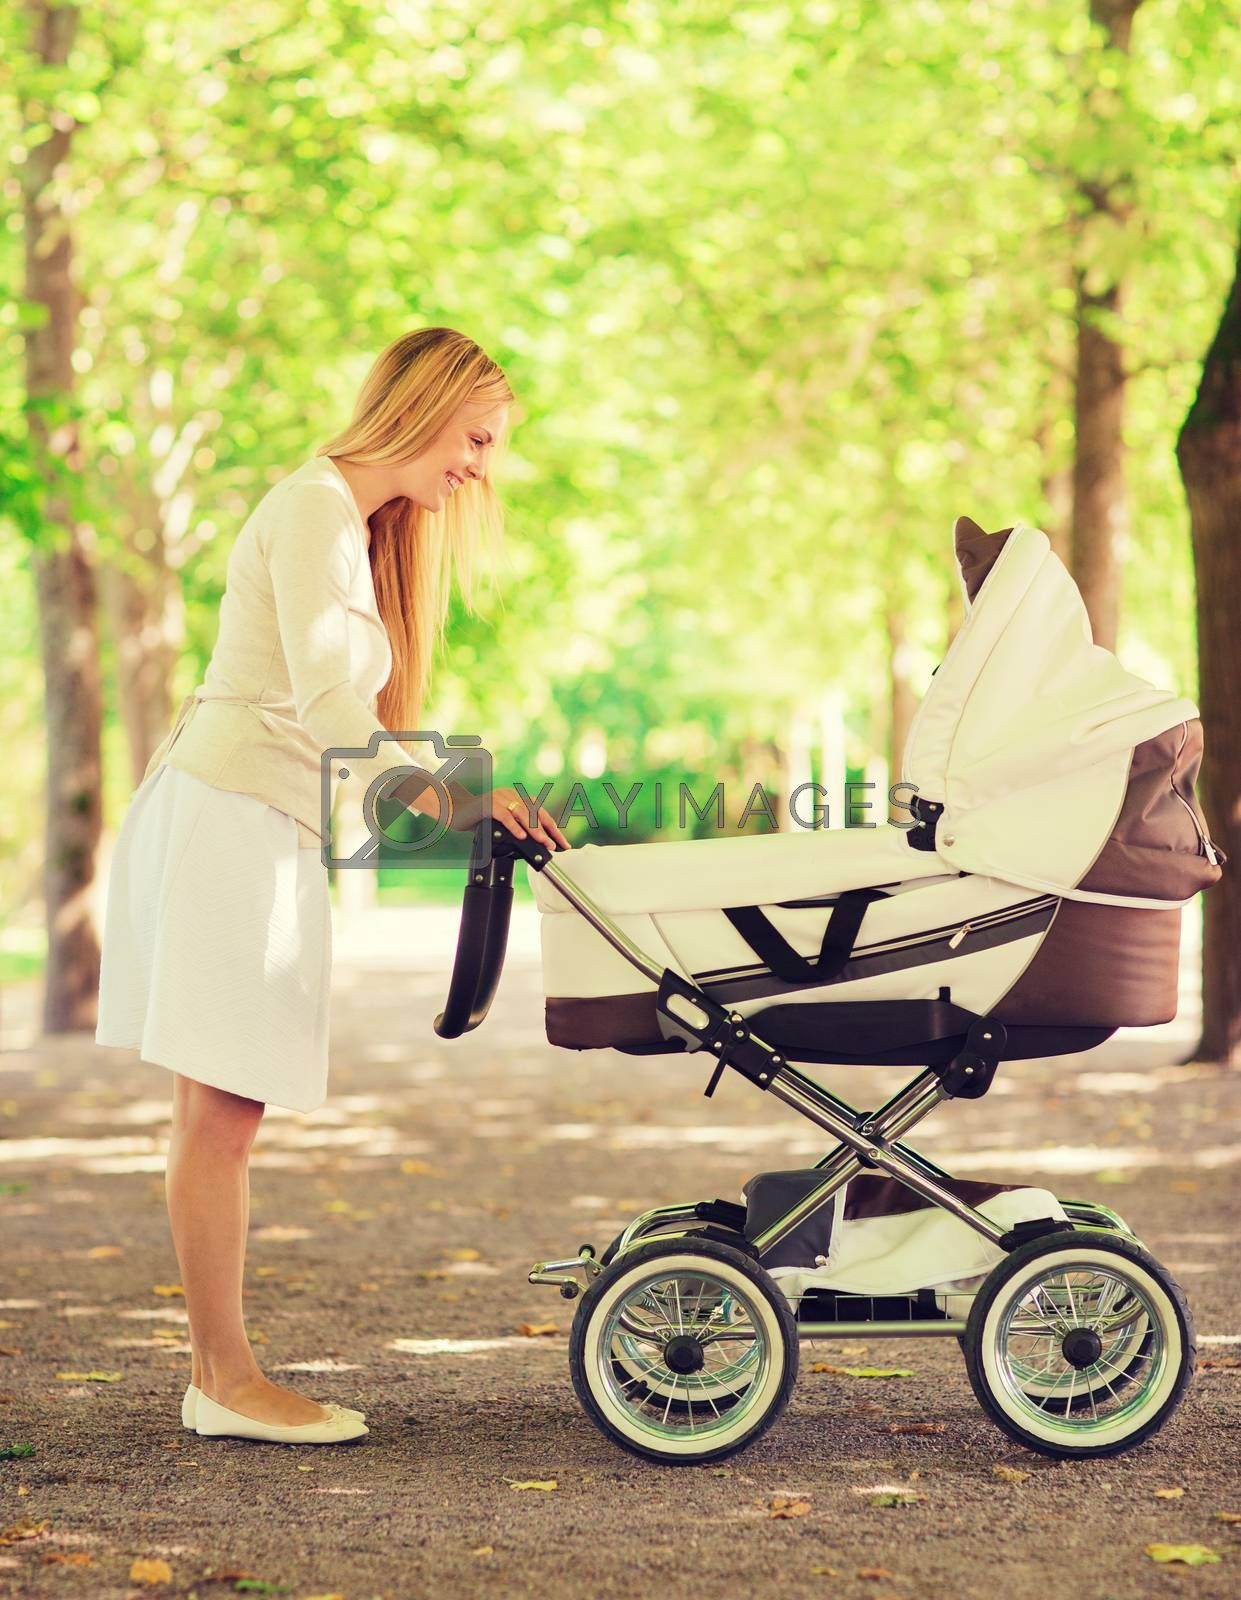 Royalty free image of happy mother with stroller in park by dolgachov